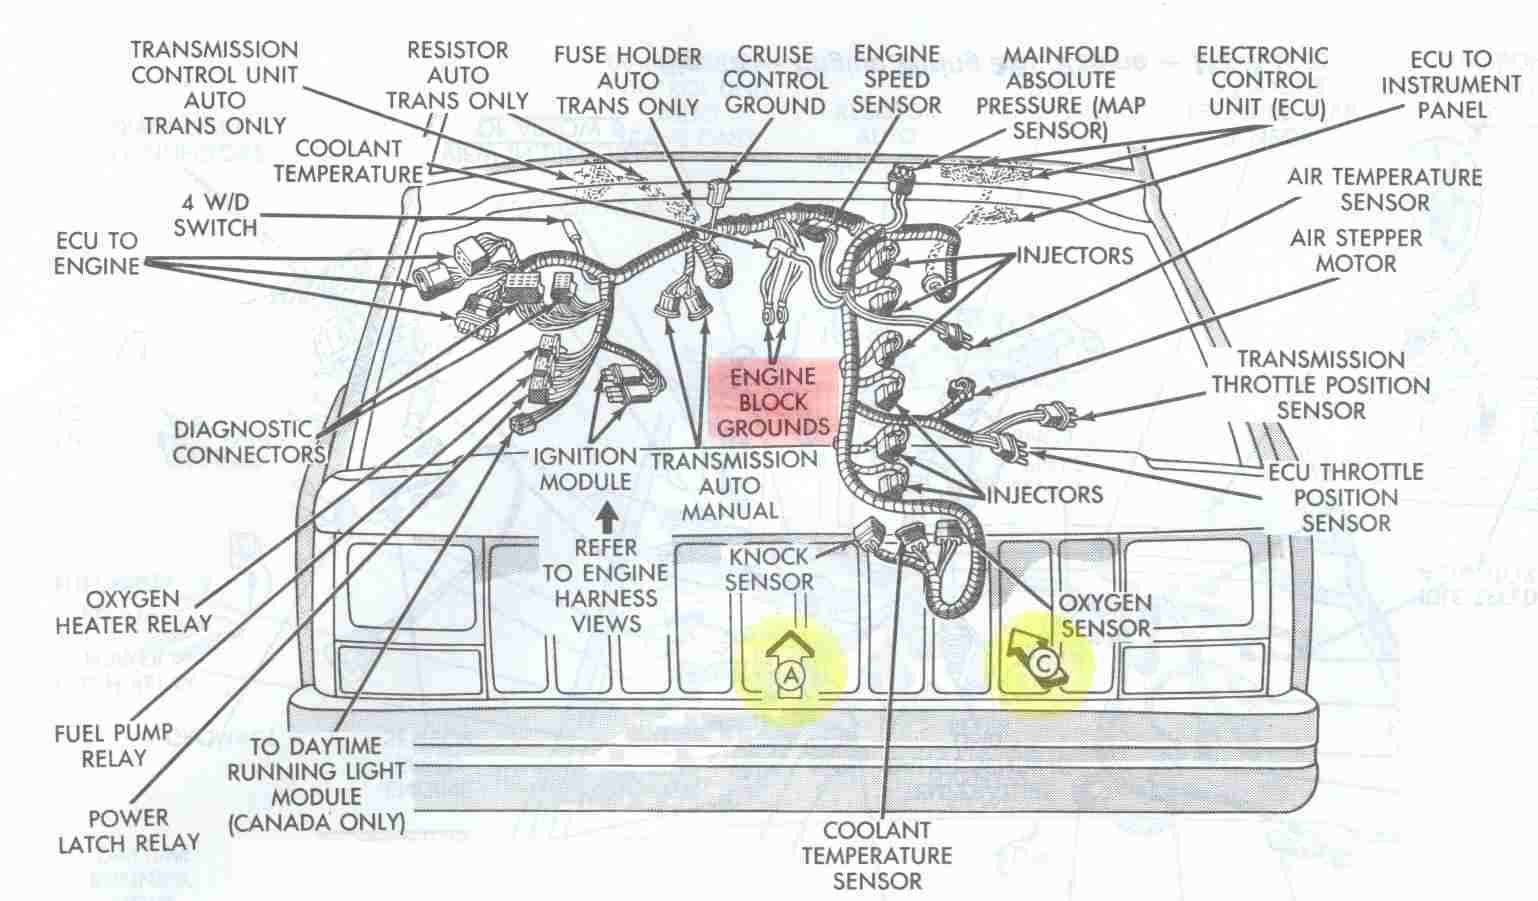 engine bay schematic showing major electrical ground points for 4 0l rh pinterest com jeep grand cherokee engine diagram 1989 jeep cherokee engine diagram